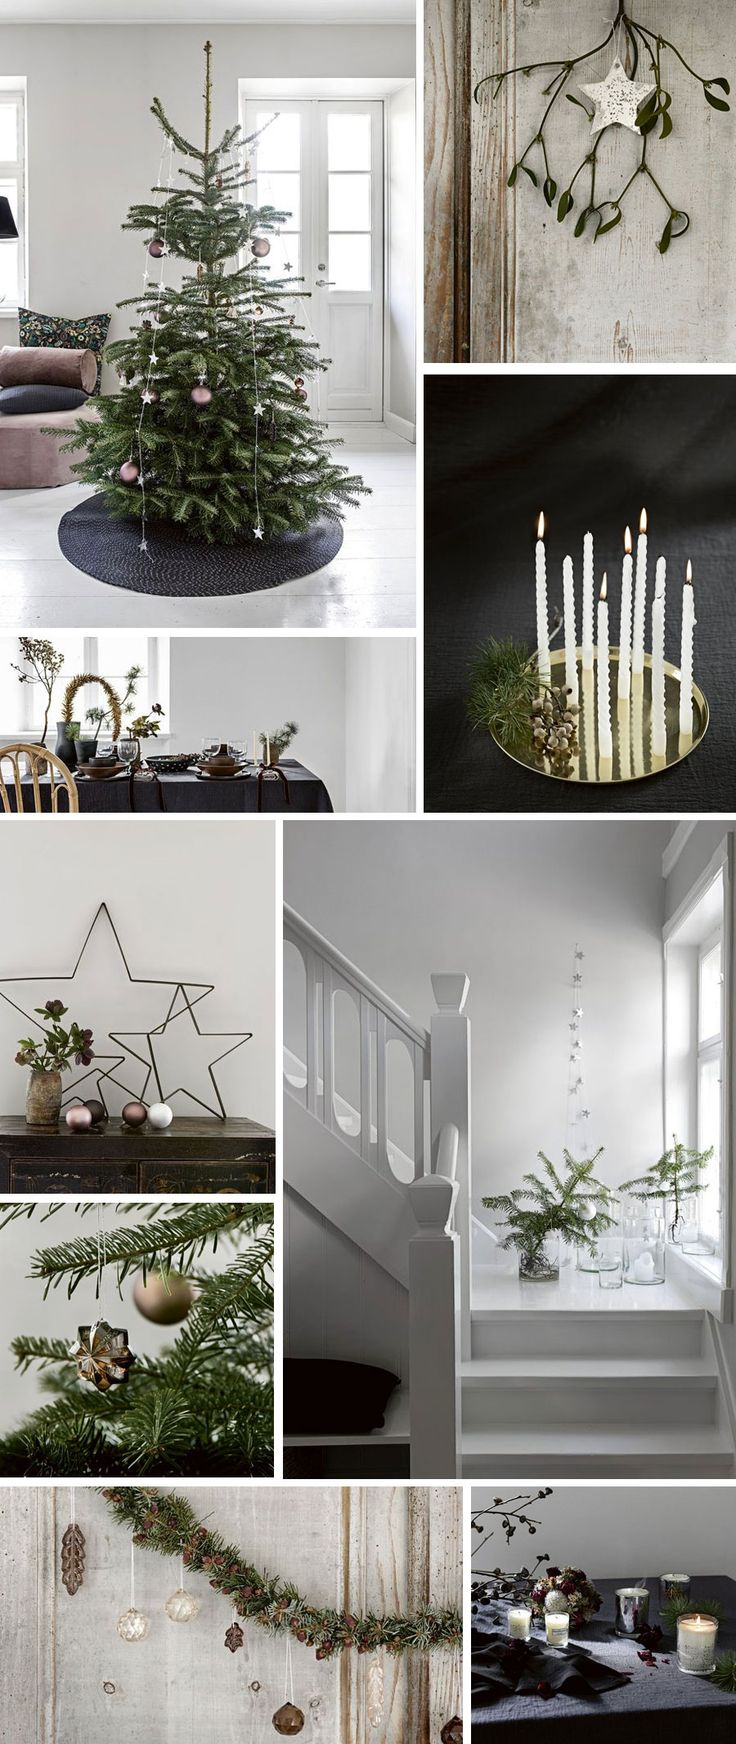 Ideas for a holiday decor you'll love, whether rustic or refined, glitzy or understated.